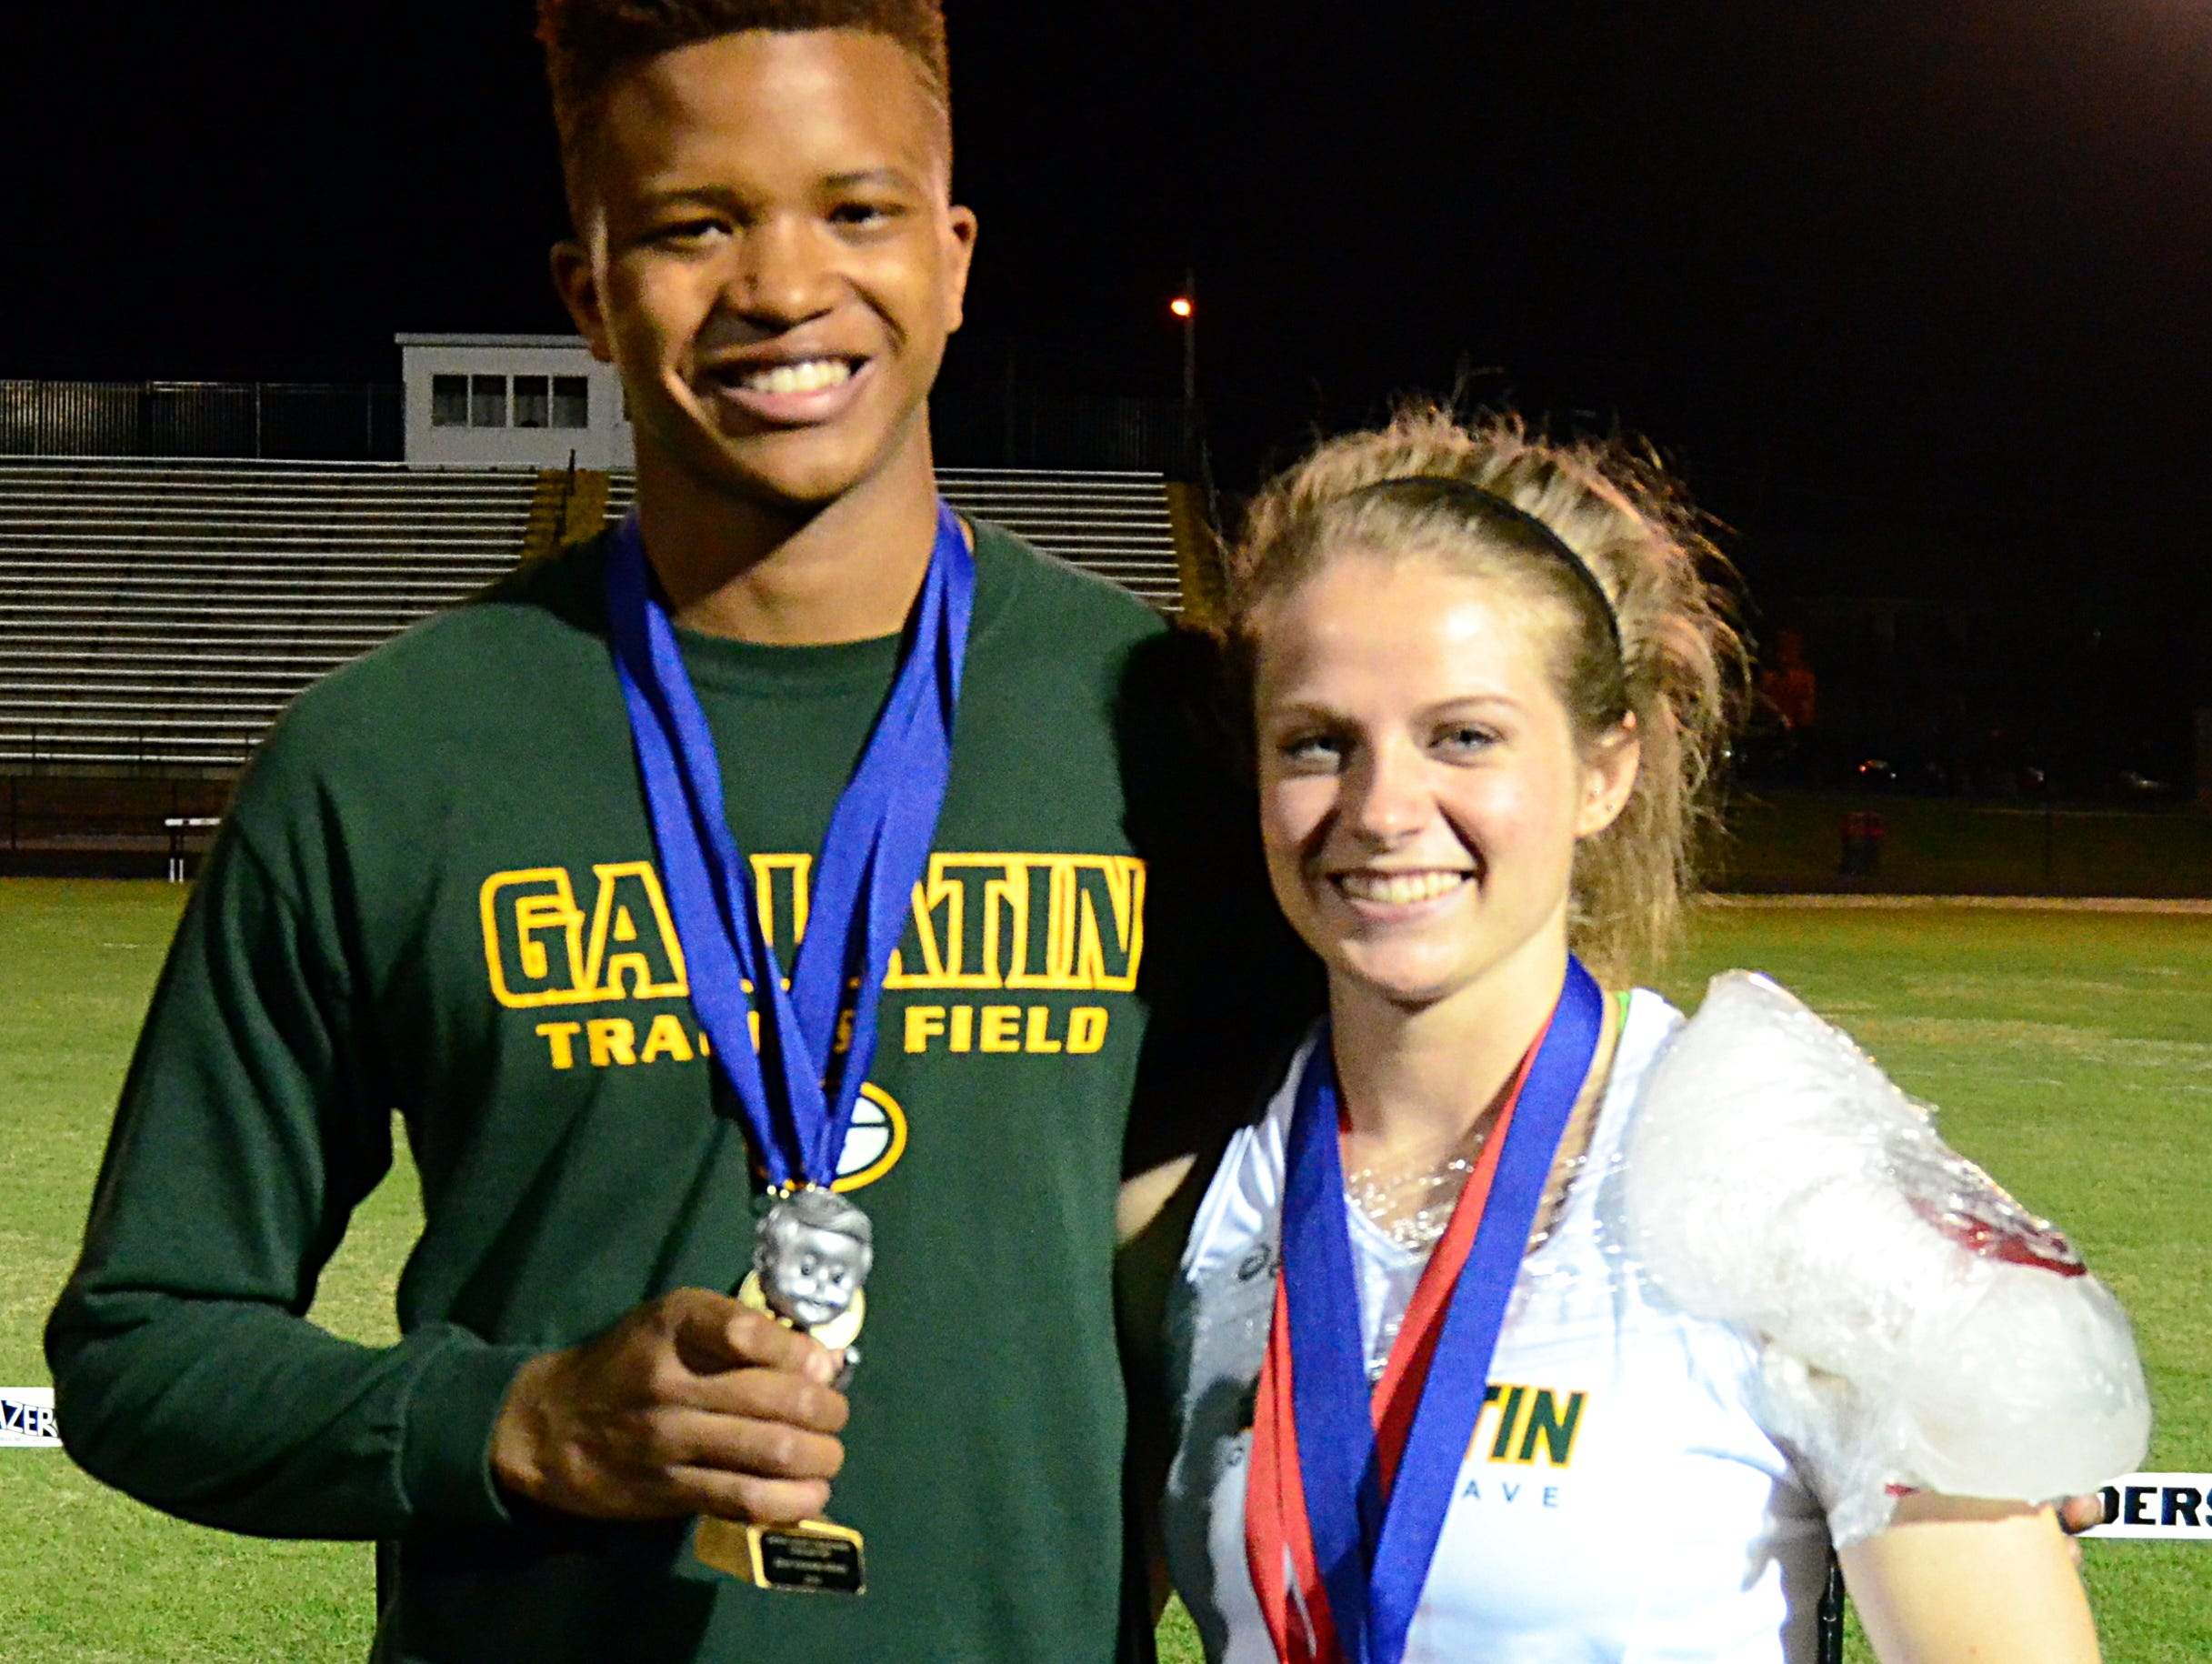 Gallatin High junior Edrico Briscoe (left) and senior Kelsey Warren won Most Valuable Athlete honors at the 14th annual Sumner County Track and Field Championship Meet, the championship for Sumner County public schools. Warren won the award for the second straight year.